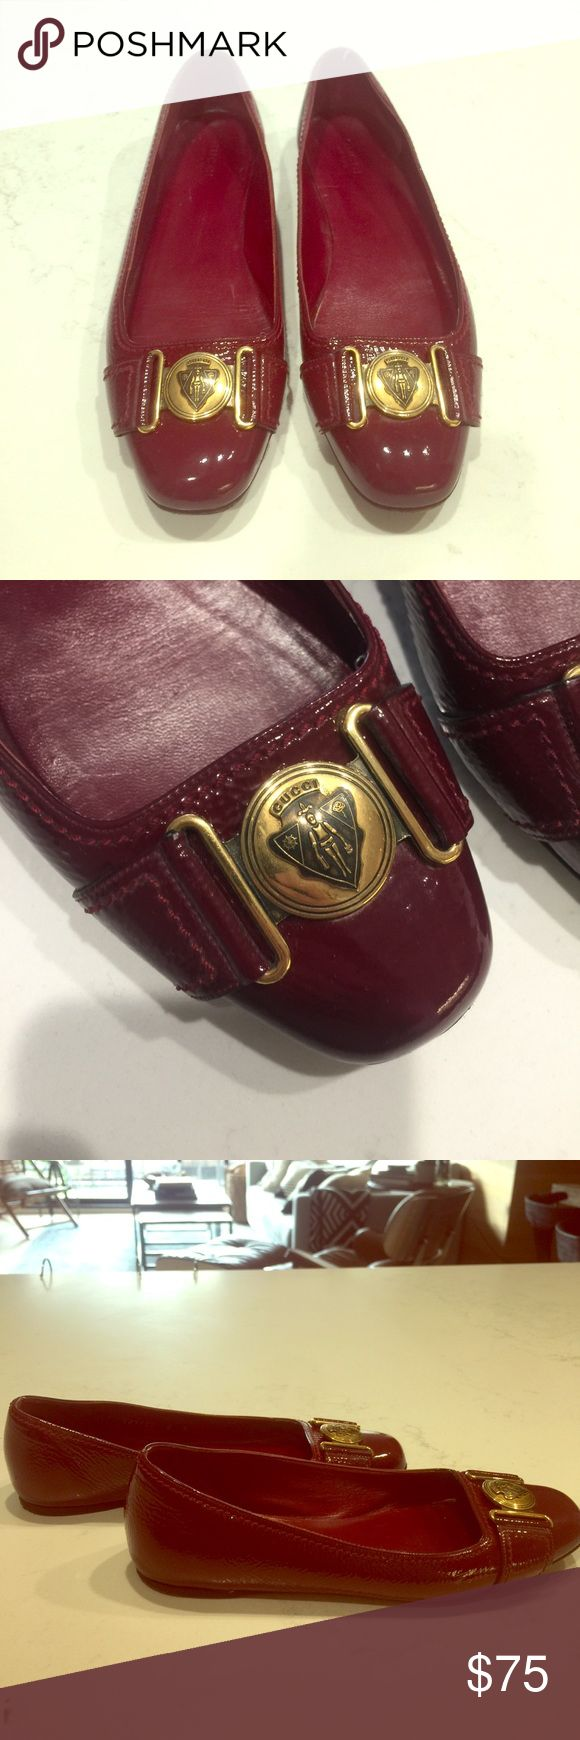 GUCCI FLATS - vintage Red patent leather Gucci flats Gucci Shoes Flats & Loafers